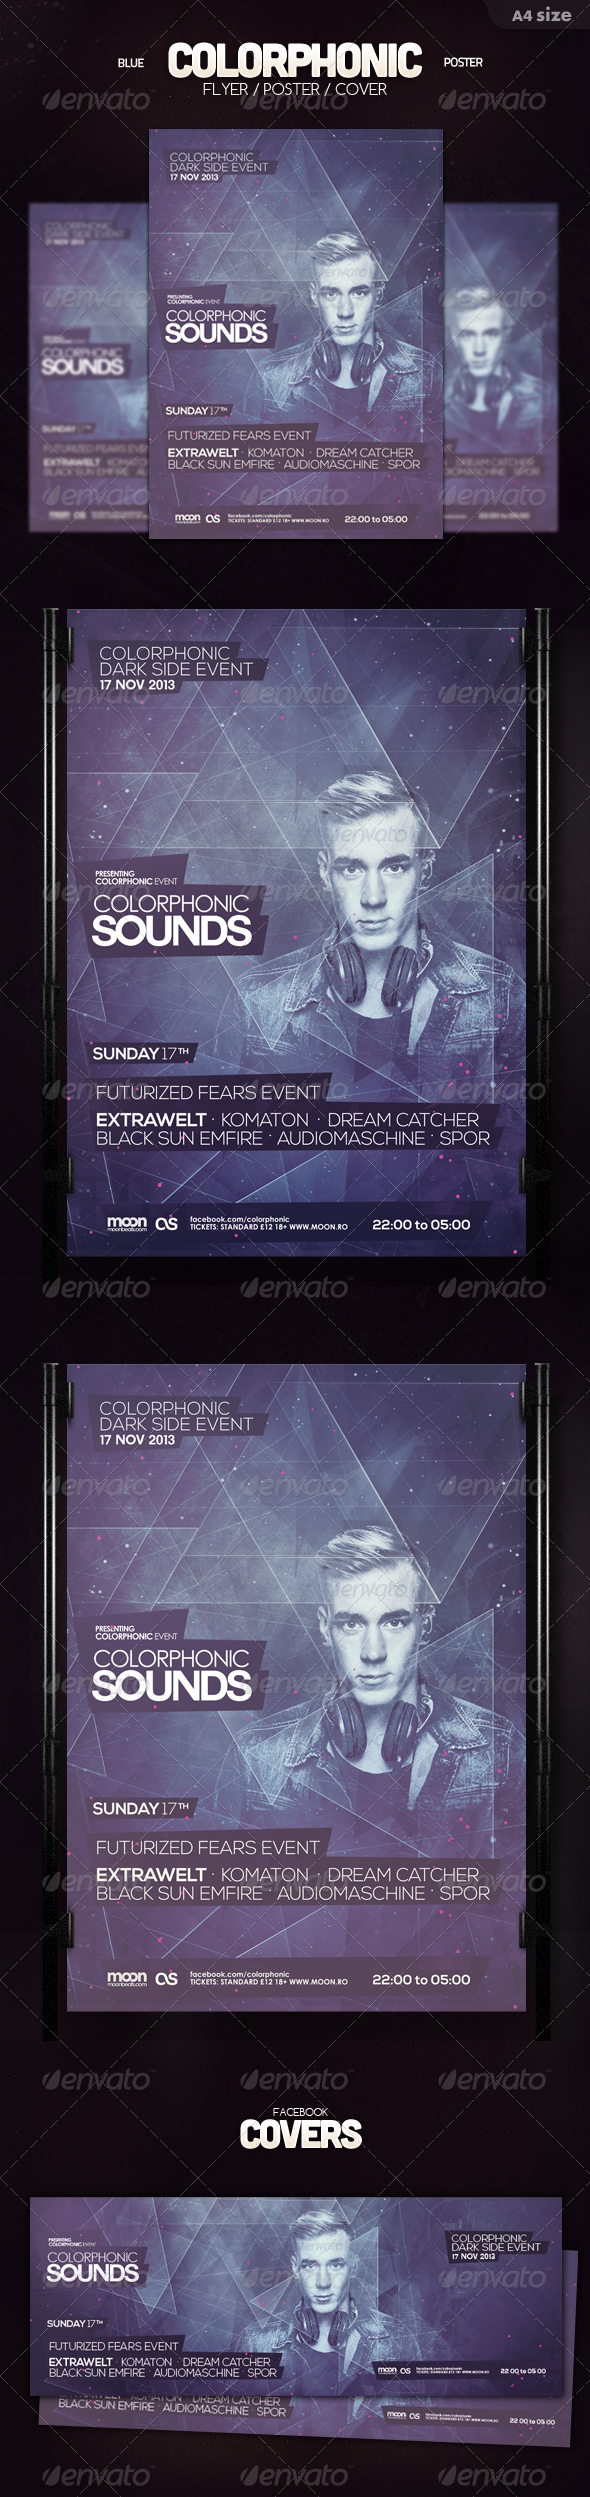 GraphicRiver Blue Colorphonic Flyer 6006885